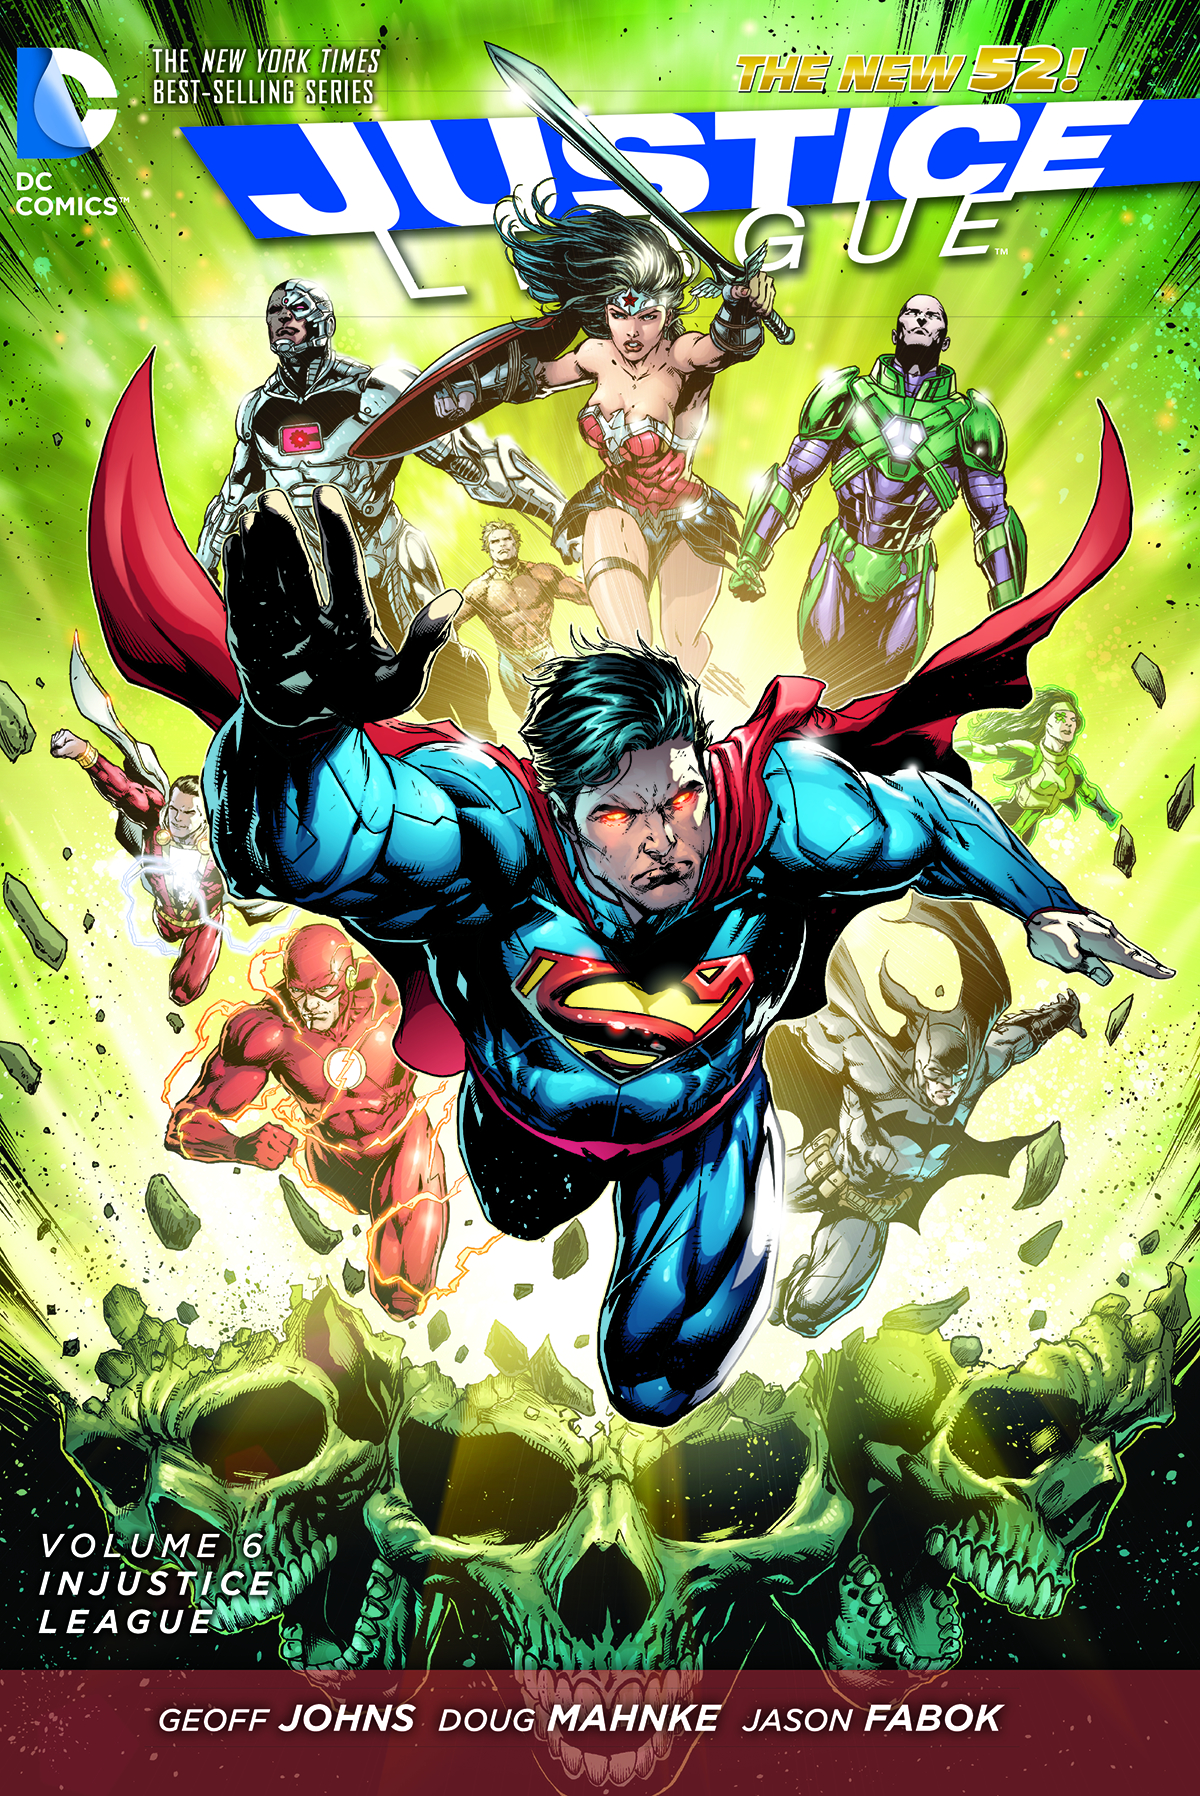 JUSTICE LEAGUE TP VOL 06 INJUSTICE LEAGUE